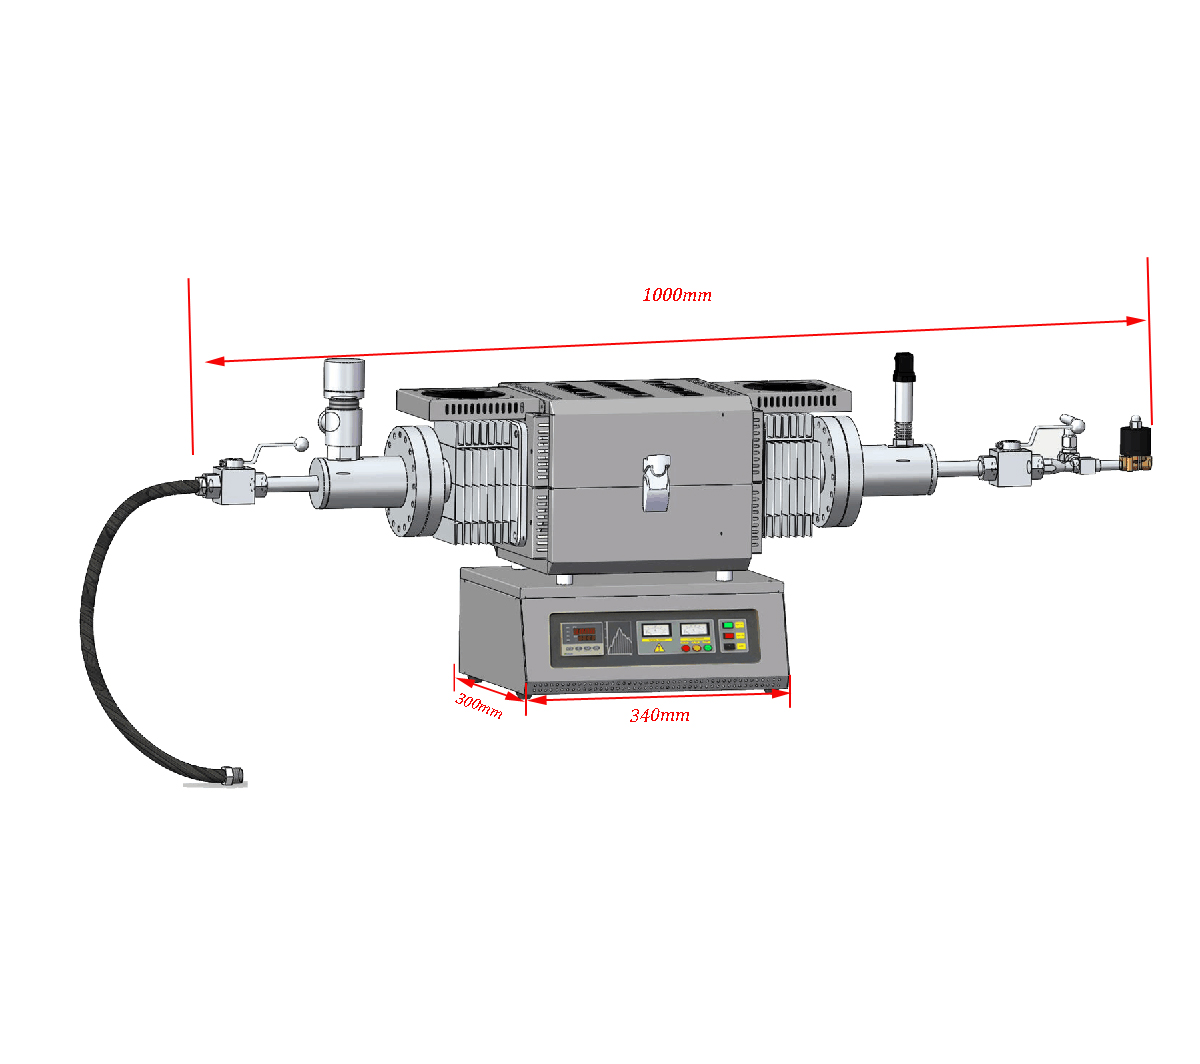 Laboratory Compact High Pressure Gas Tube Furnace (HIP) with Super alloy tube-CY-O1200S-HP